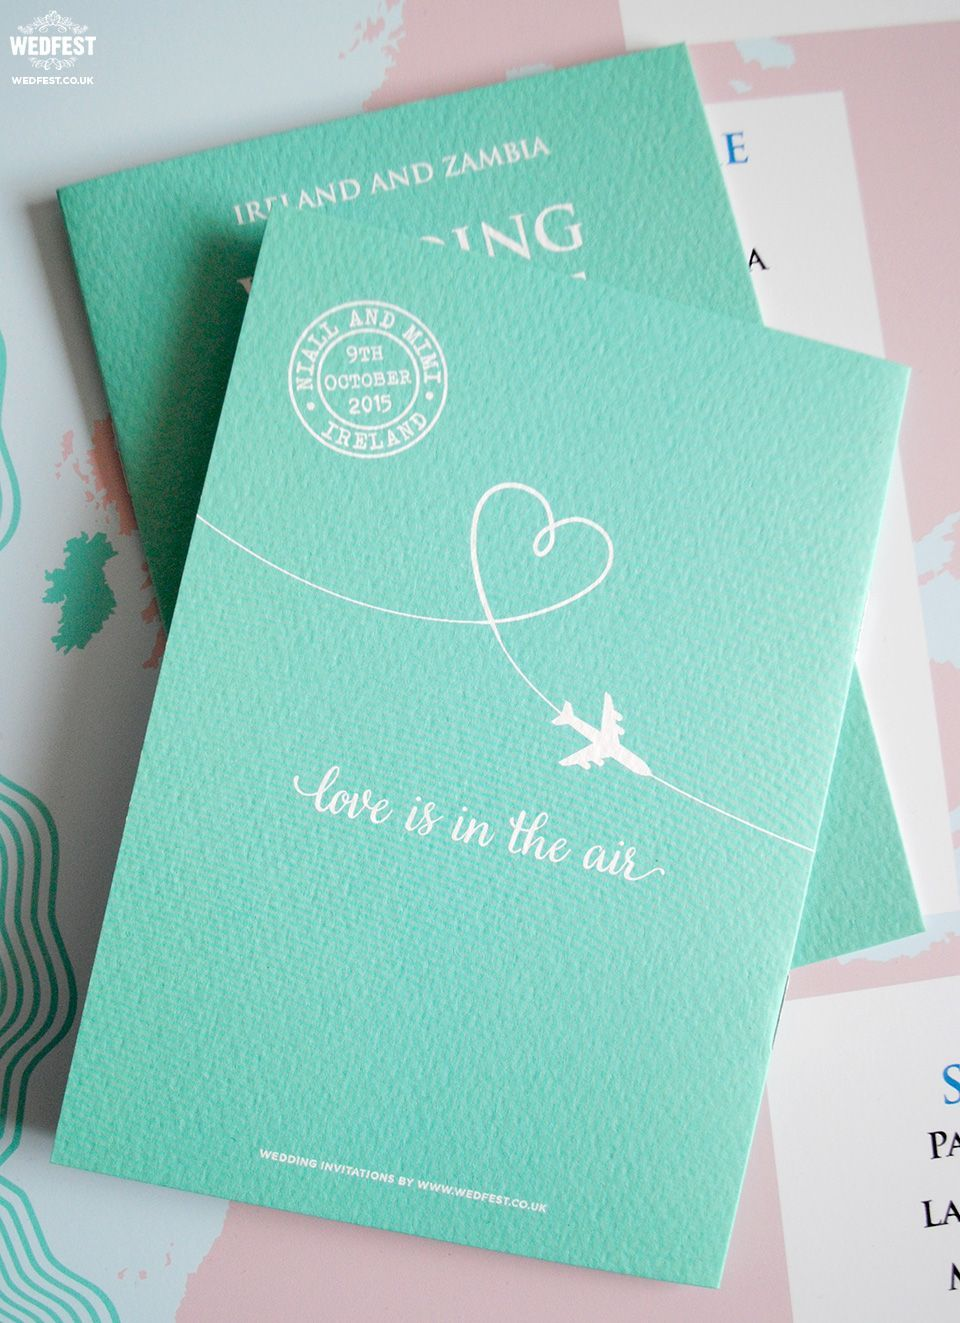 wedding passport invite http://www.wedfest.co/passport-wedding ...